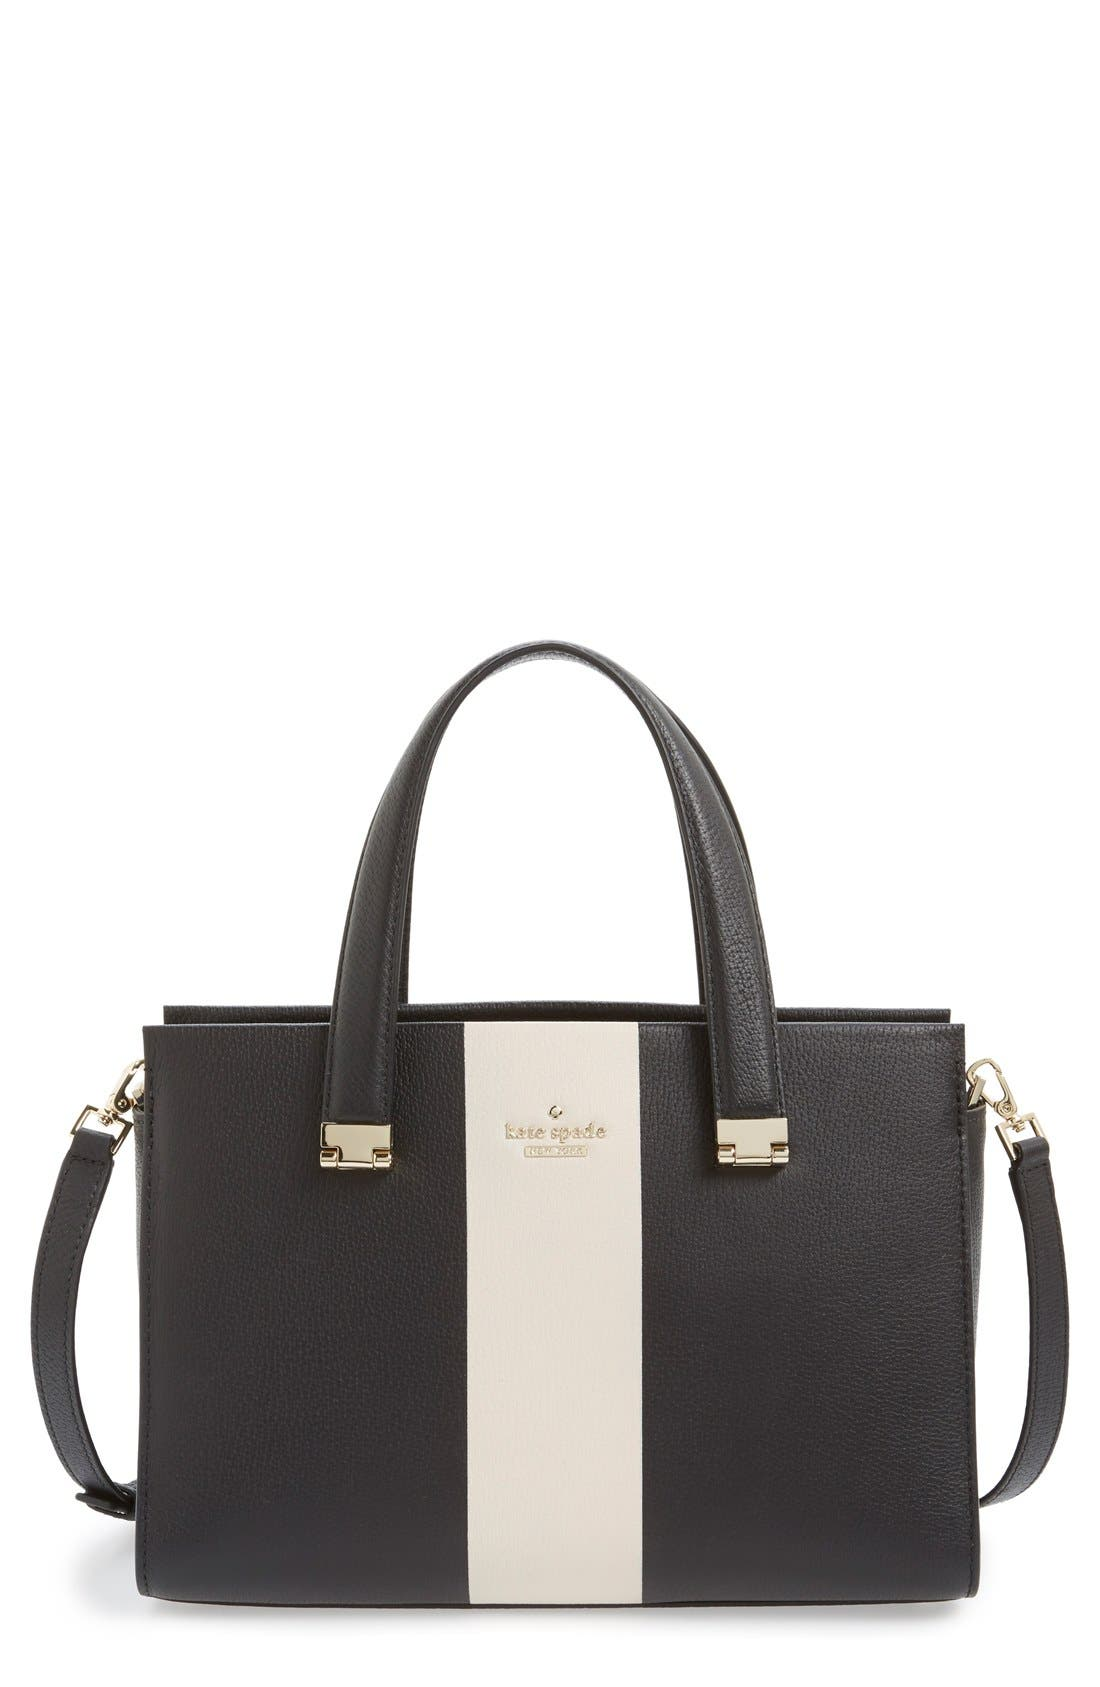 Alternate Image 1 Selected - kate spade new york 'concord street - gail' leather satchel